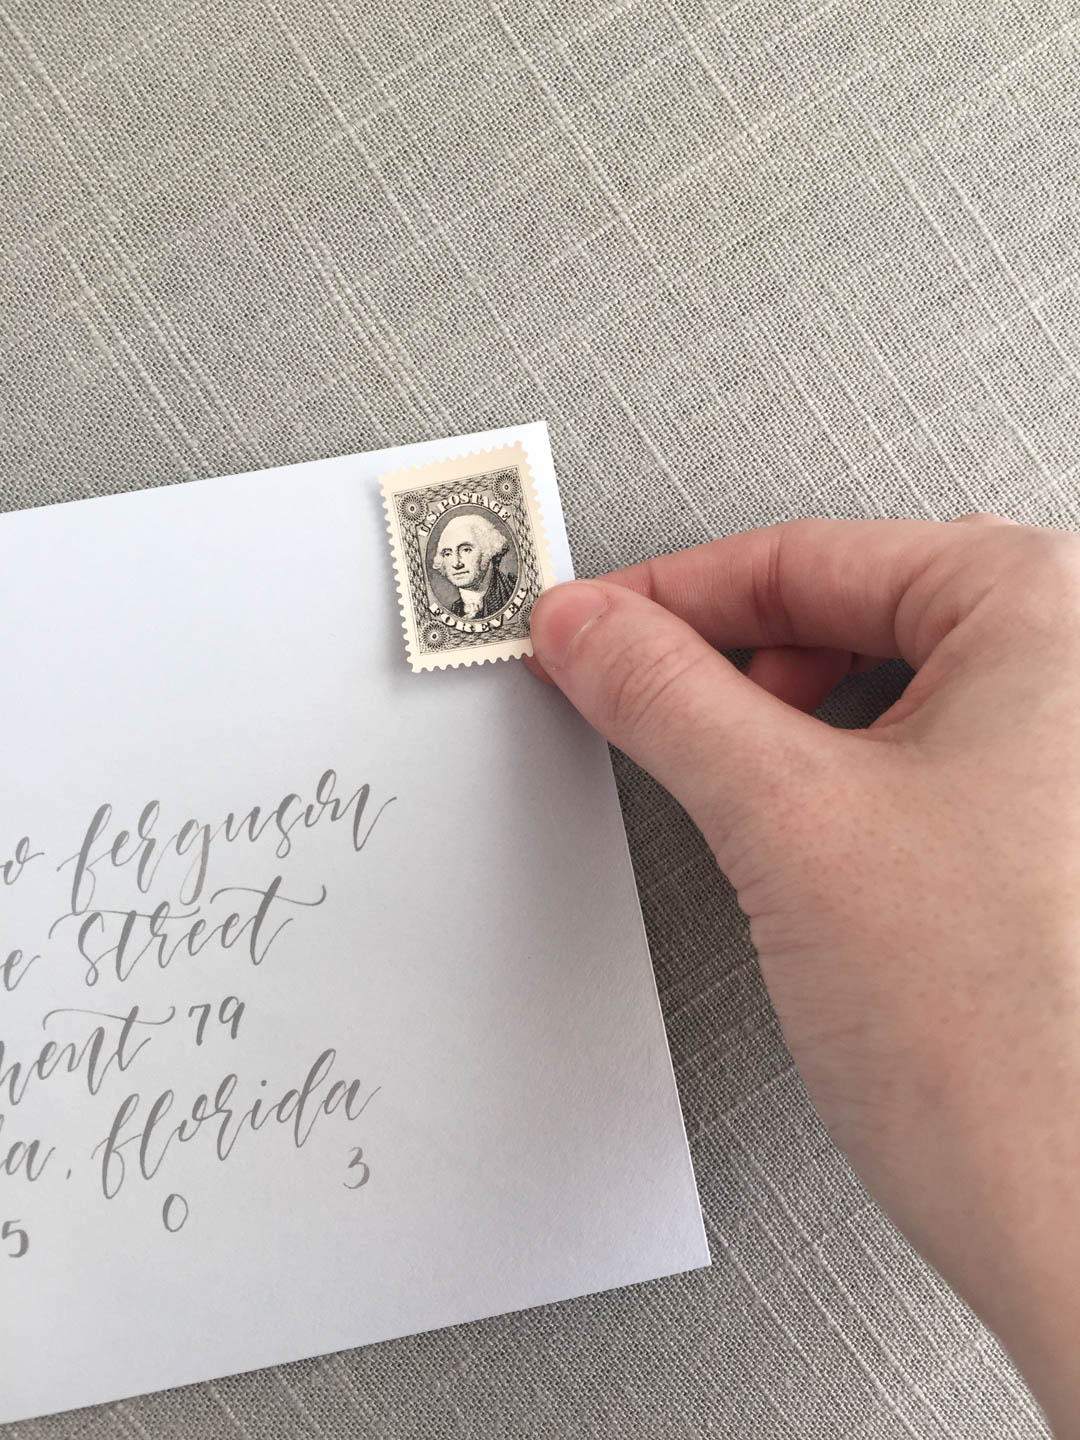 Worrying about wedding invitation assembly can add so much unnecessary stress to your wedding planning. | 3 reasons for your stationer to assemble your wedding invitations | Calligraphy by The Blonde Scribe | Custom wedding invitations by Little Fox Paperie | Chicago, Illinois | Gracie Nunez